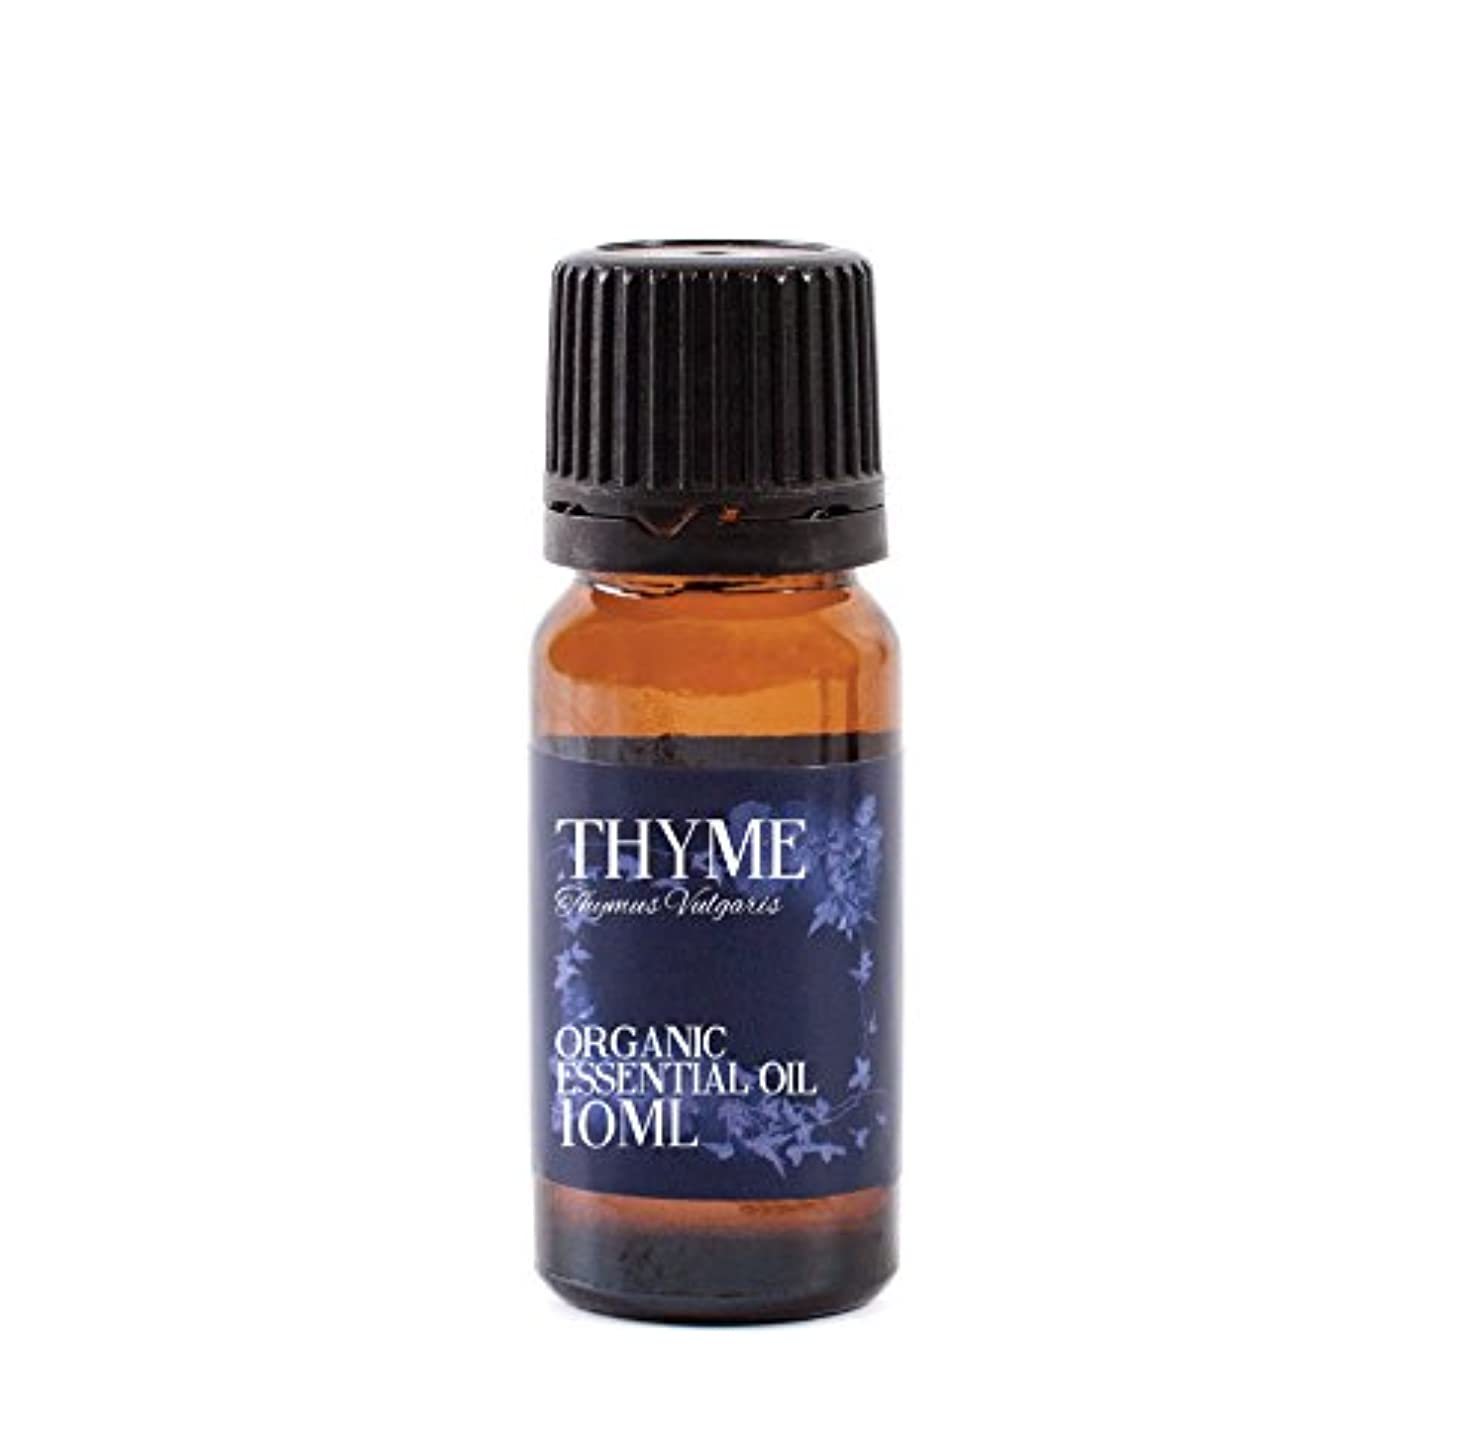 征服者変更可能急勾配のMystic Moments | Thyme Organic Essential Oil - 10ml - 100% Pure